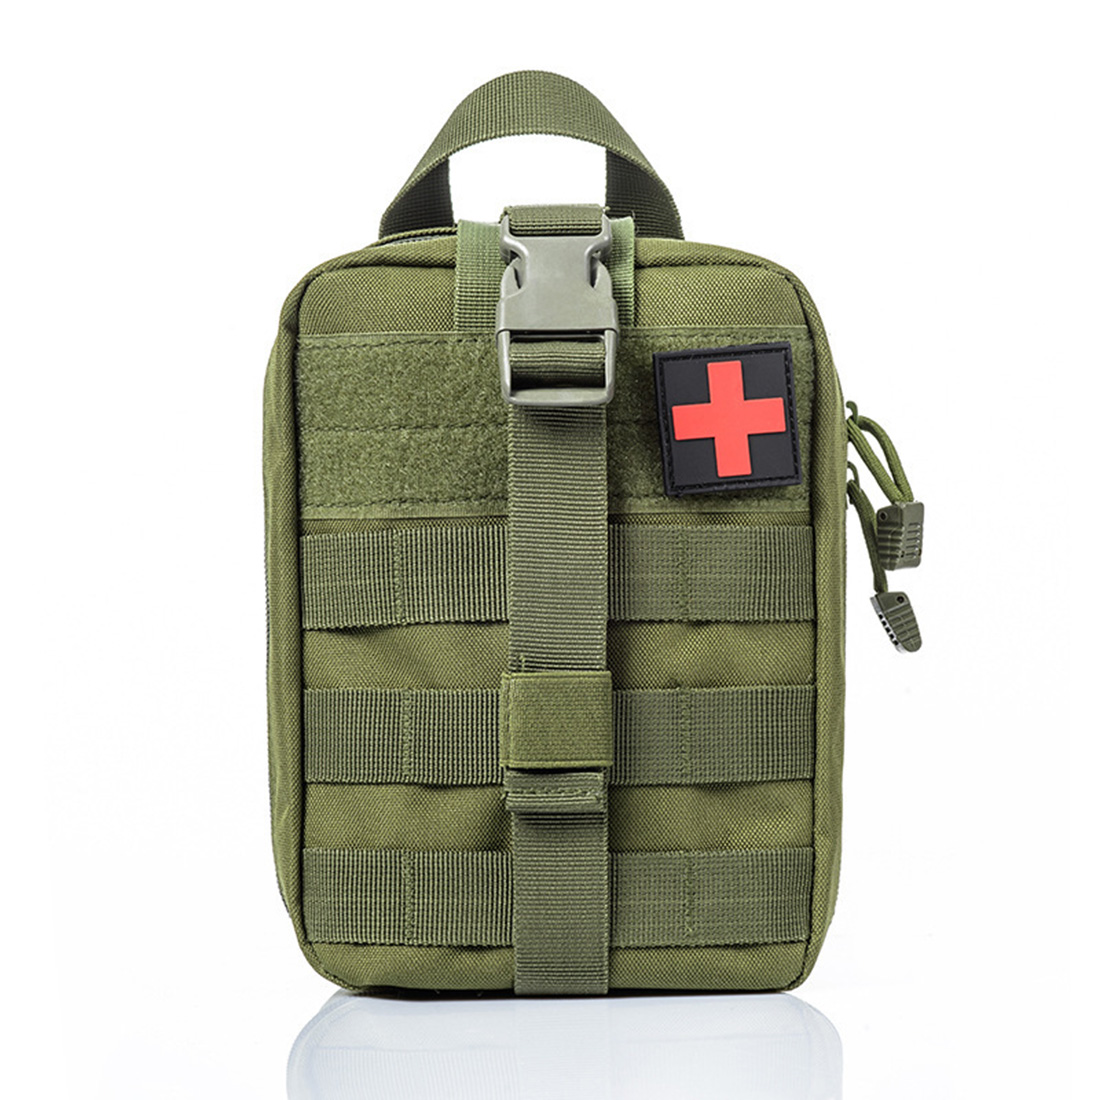 Tactical EMT Rescue Bag First Aid Kit Pouch Military Medical Emergency Backpack For Hunting Outdoor Climbing Utility Accessory